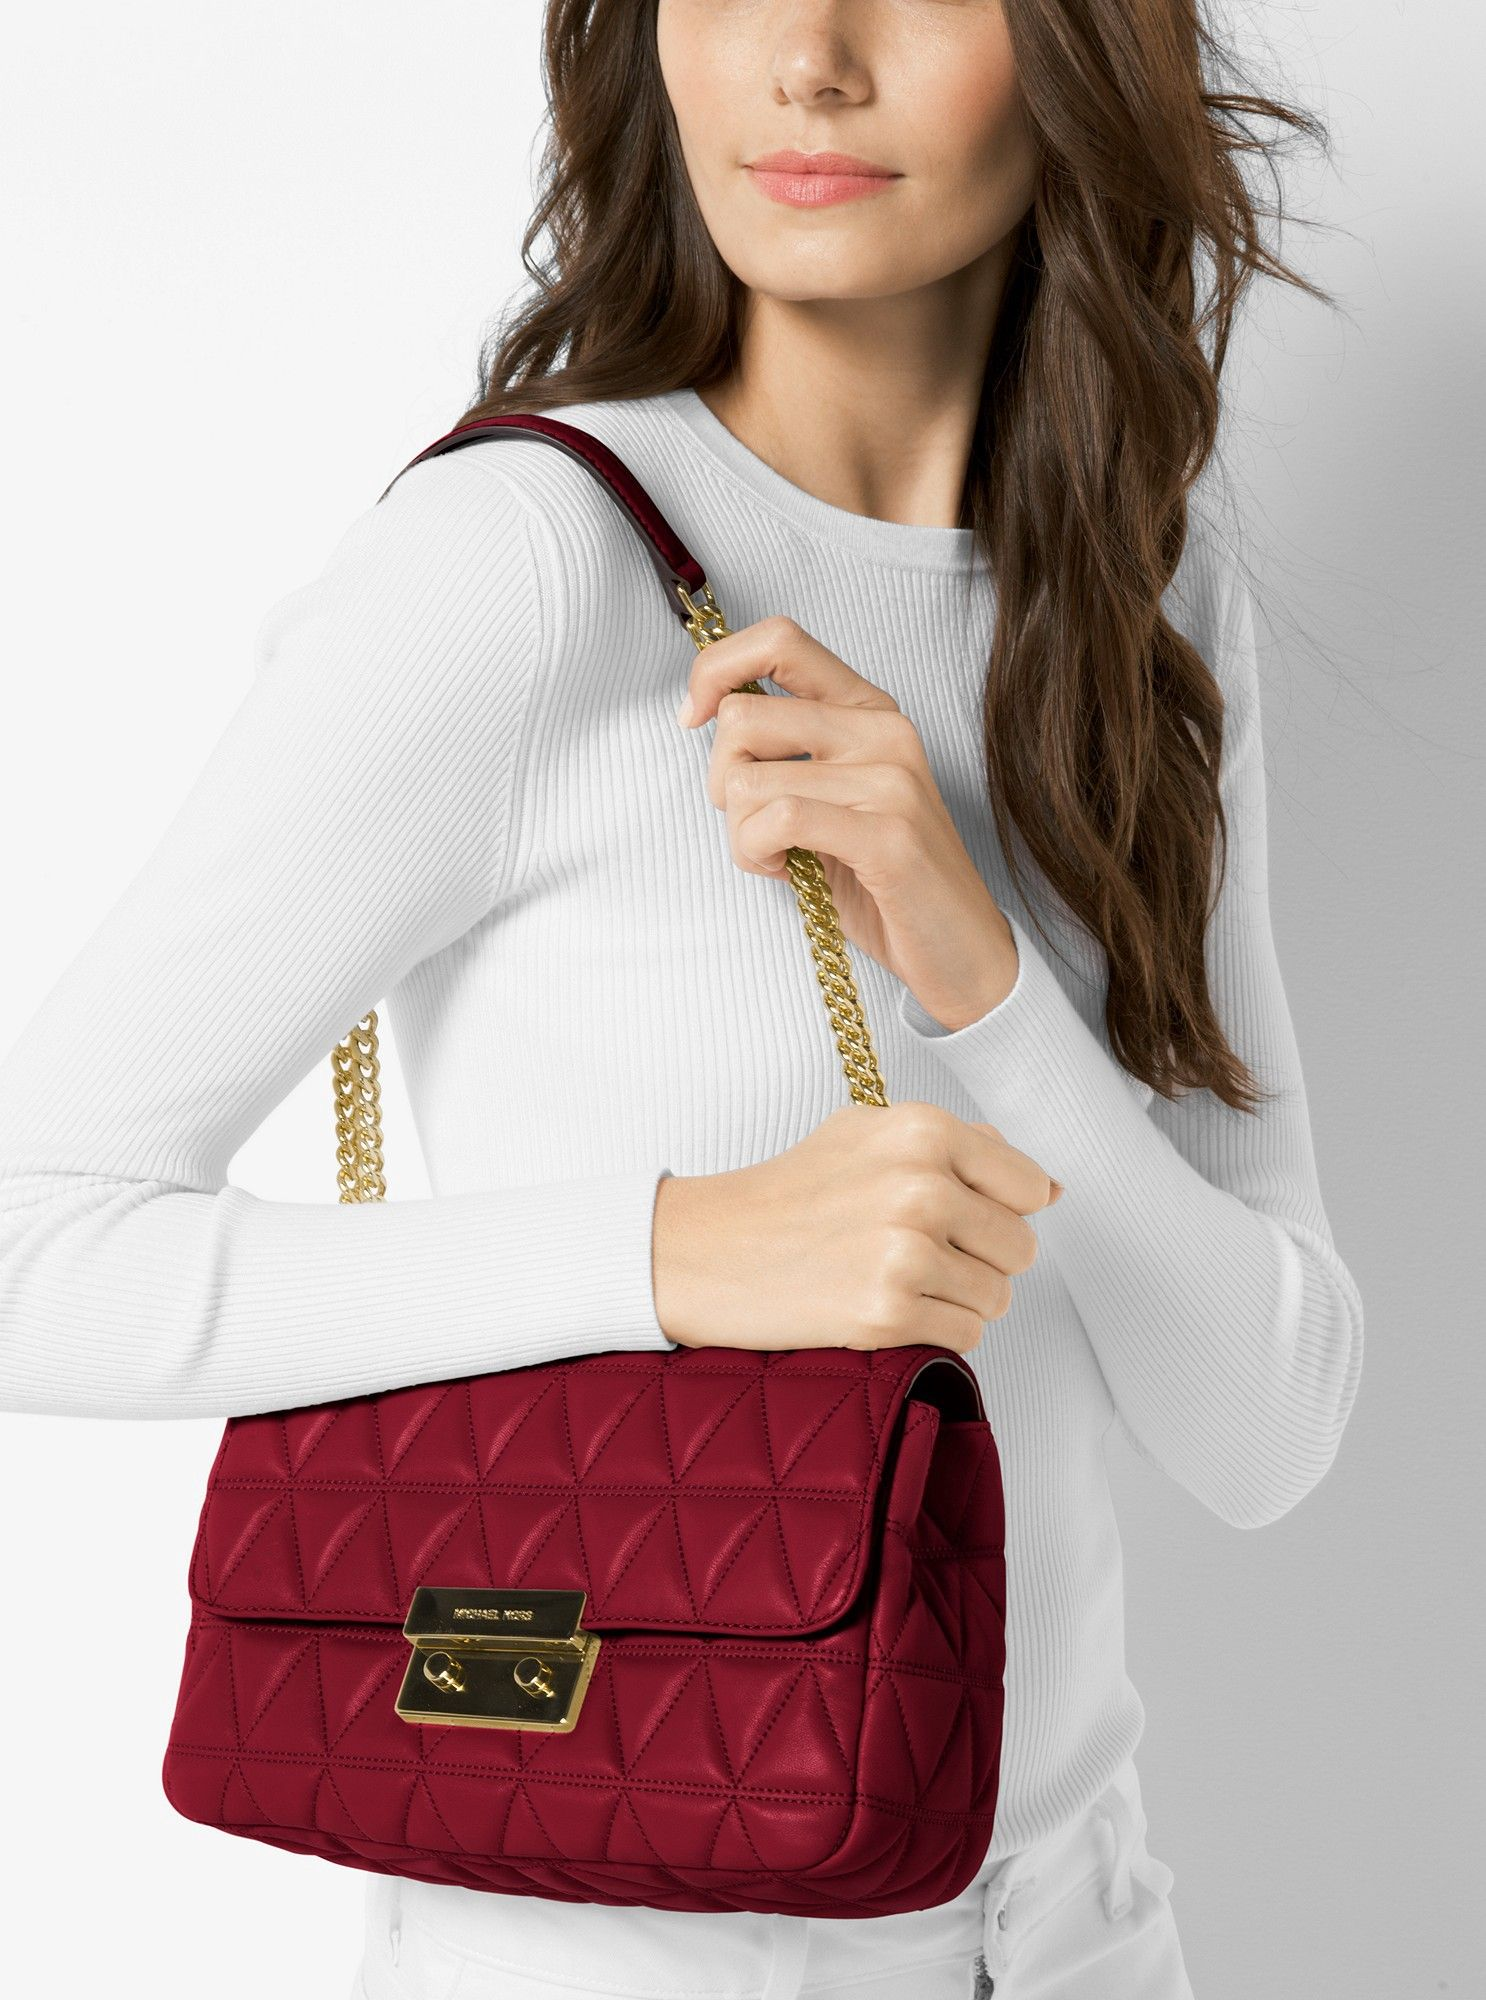 f31bc1971a93 Michael Kors Sloan Large Quilted-Leather Shoulder Bag - Maroon ...